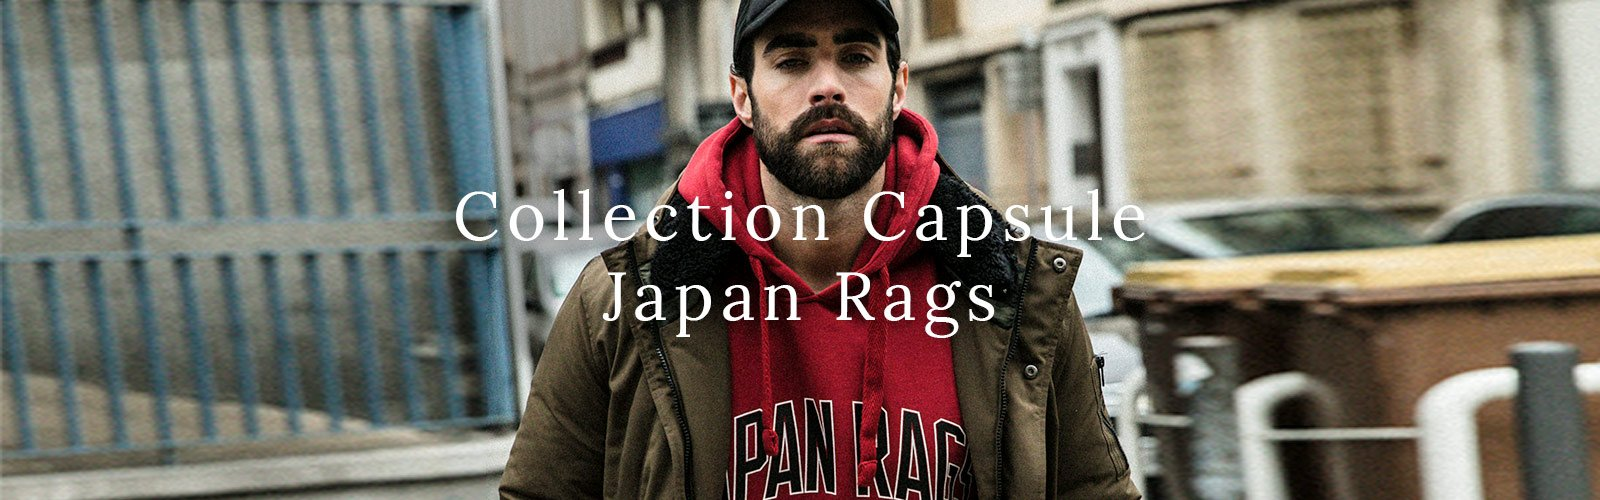 Collection Capsule Japan Rags